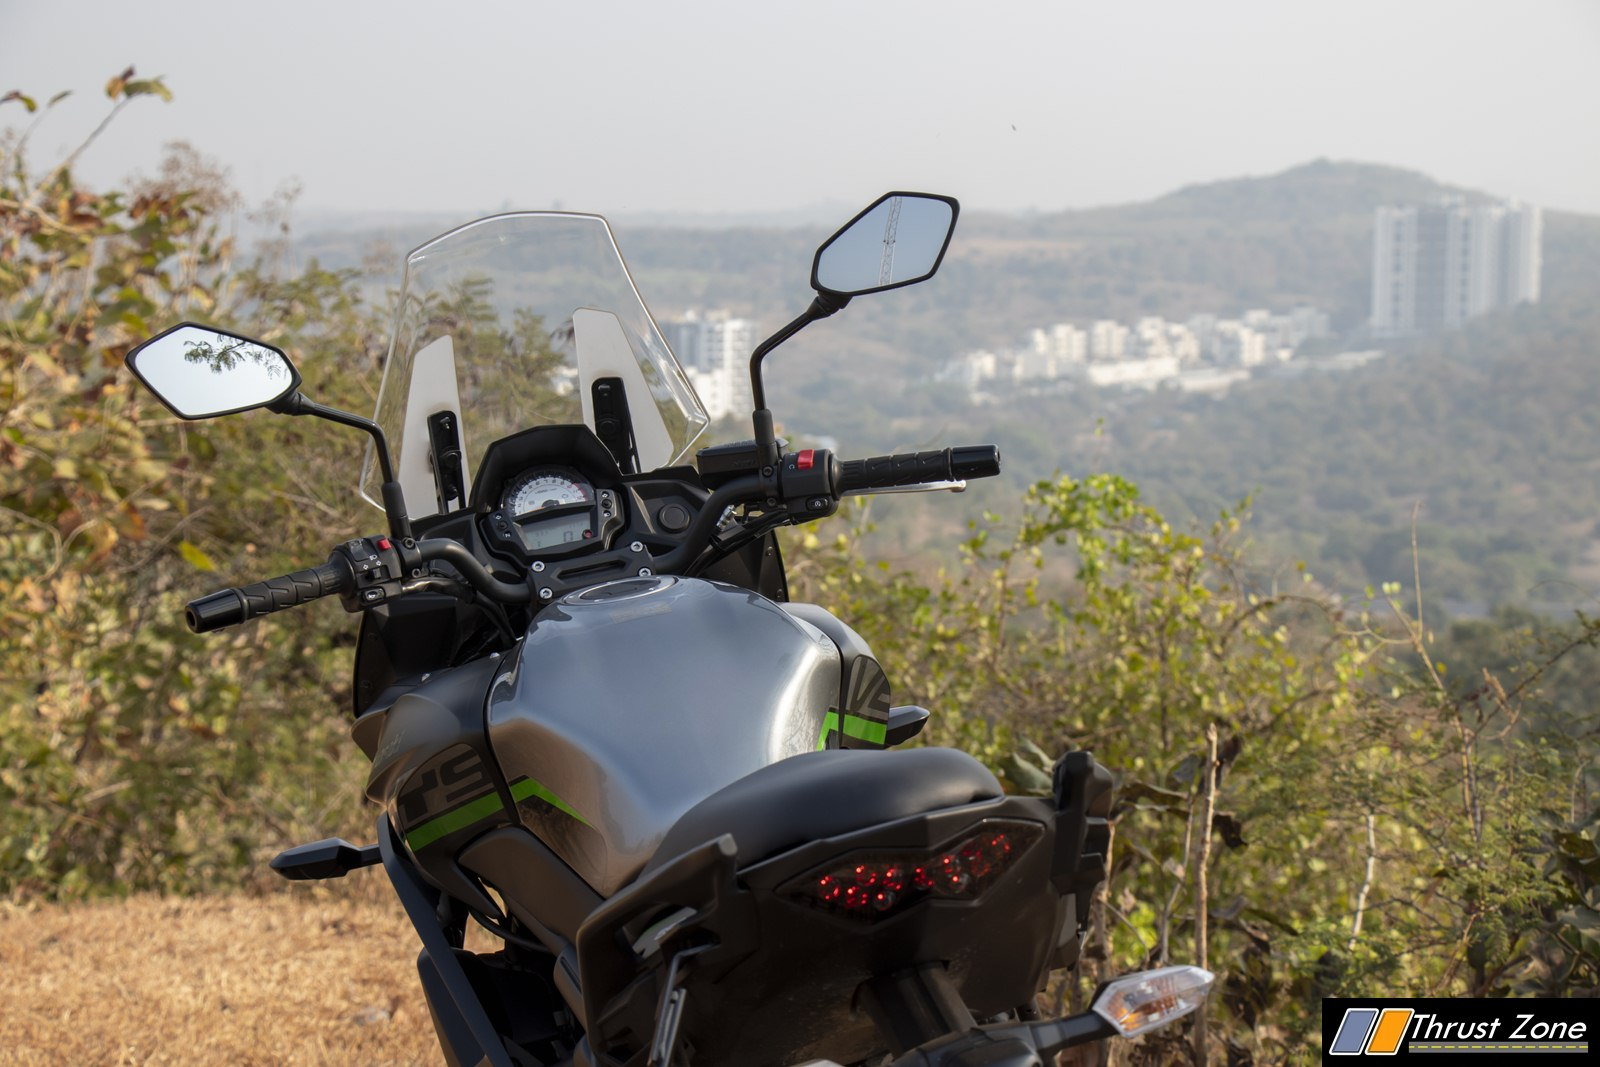 2019 Kawasaki Versys 650 India Review First Ride